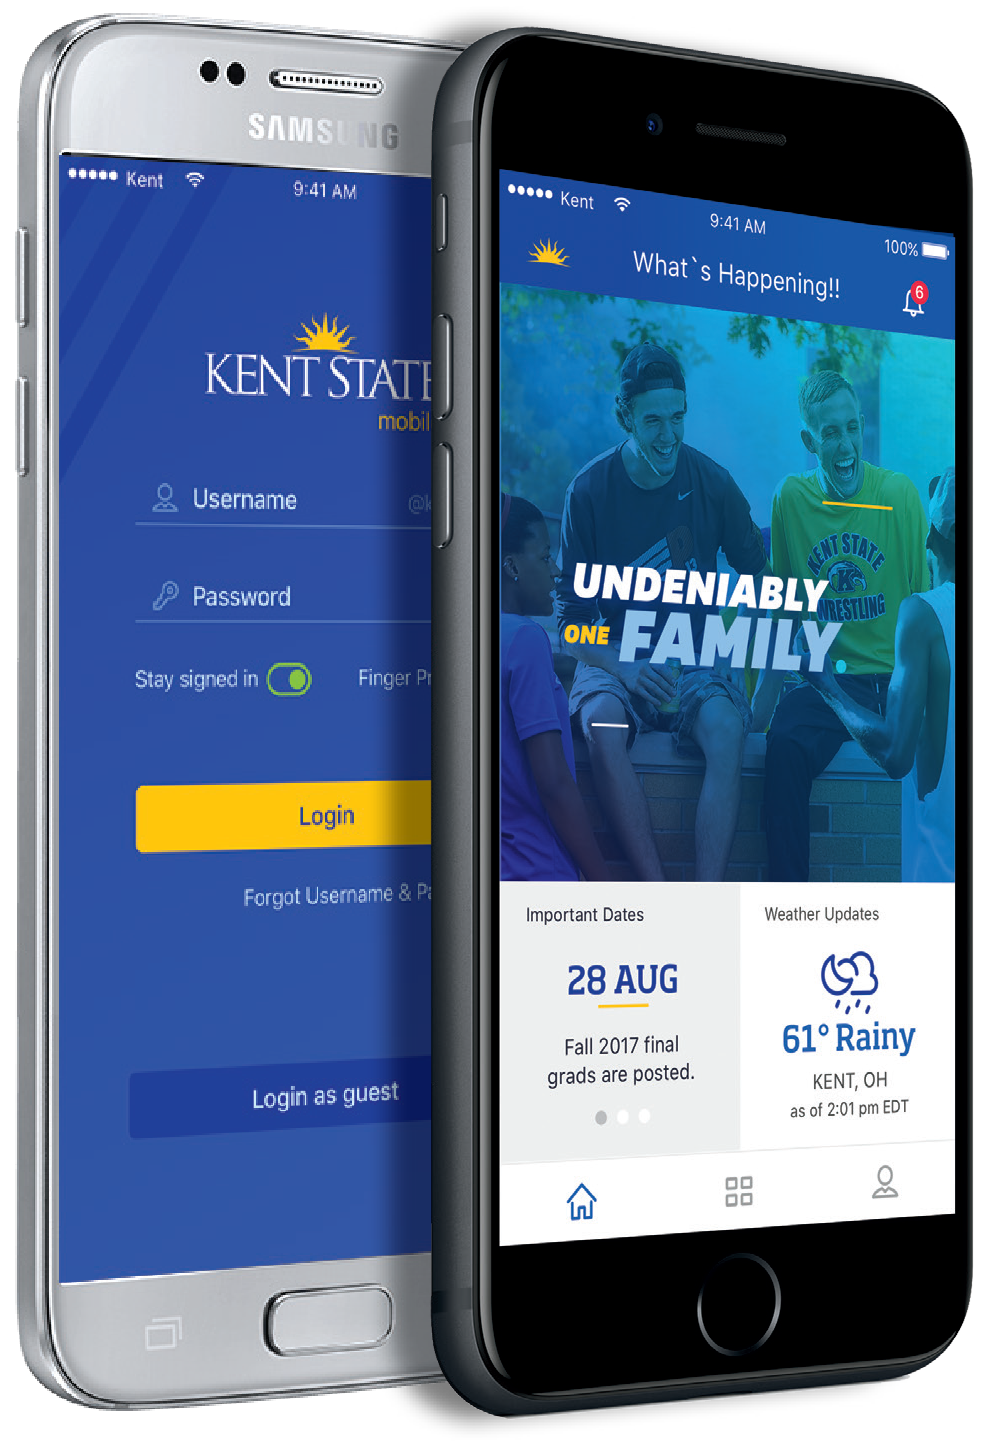 Two smartphones displaying a preview of the new KSUMobile home screens